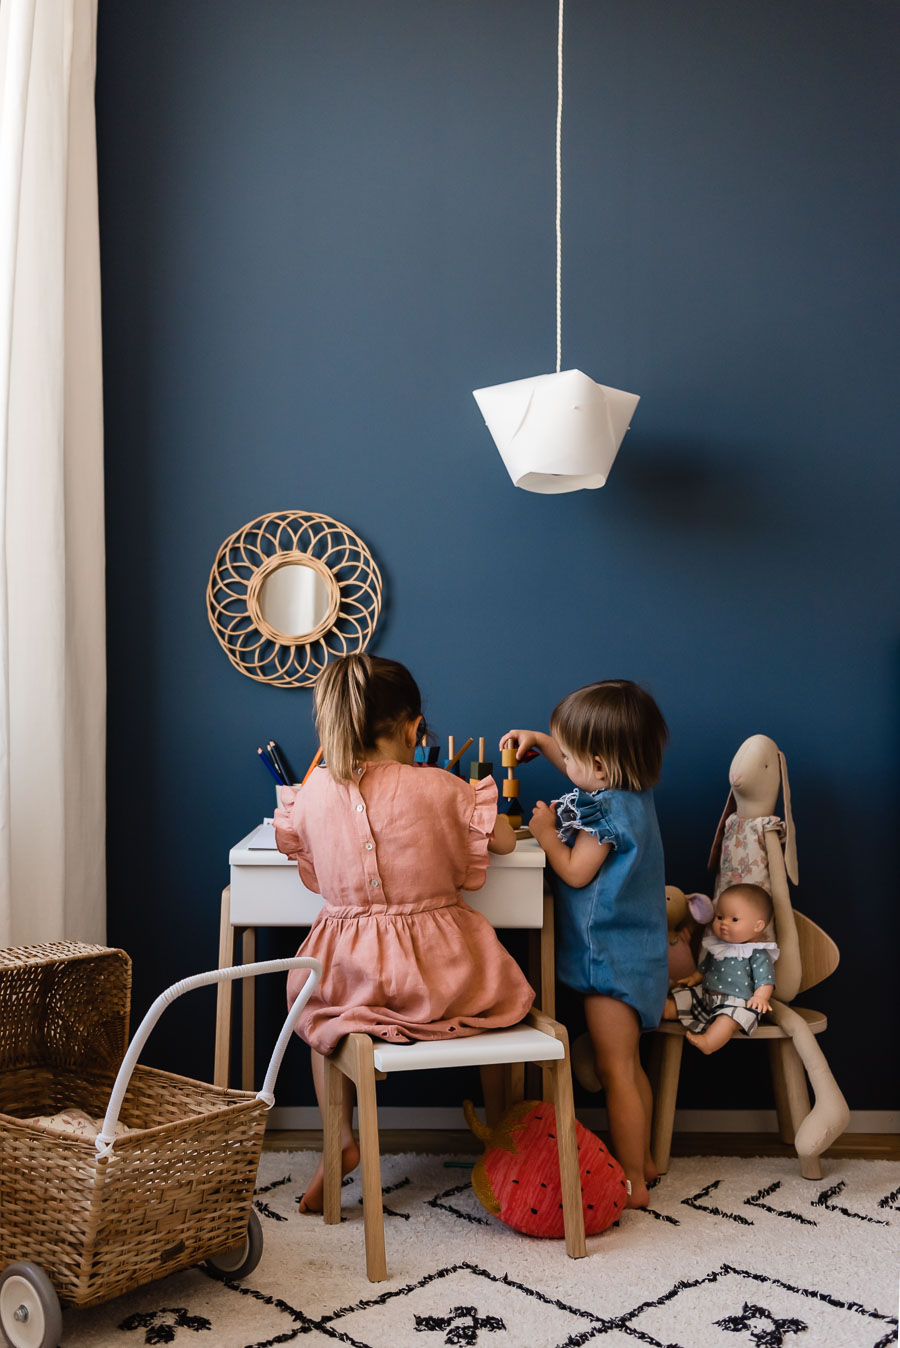 Paint walls yourself: It's that easy. With tips and tricks to make it happen